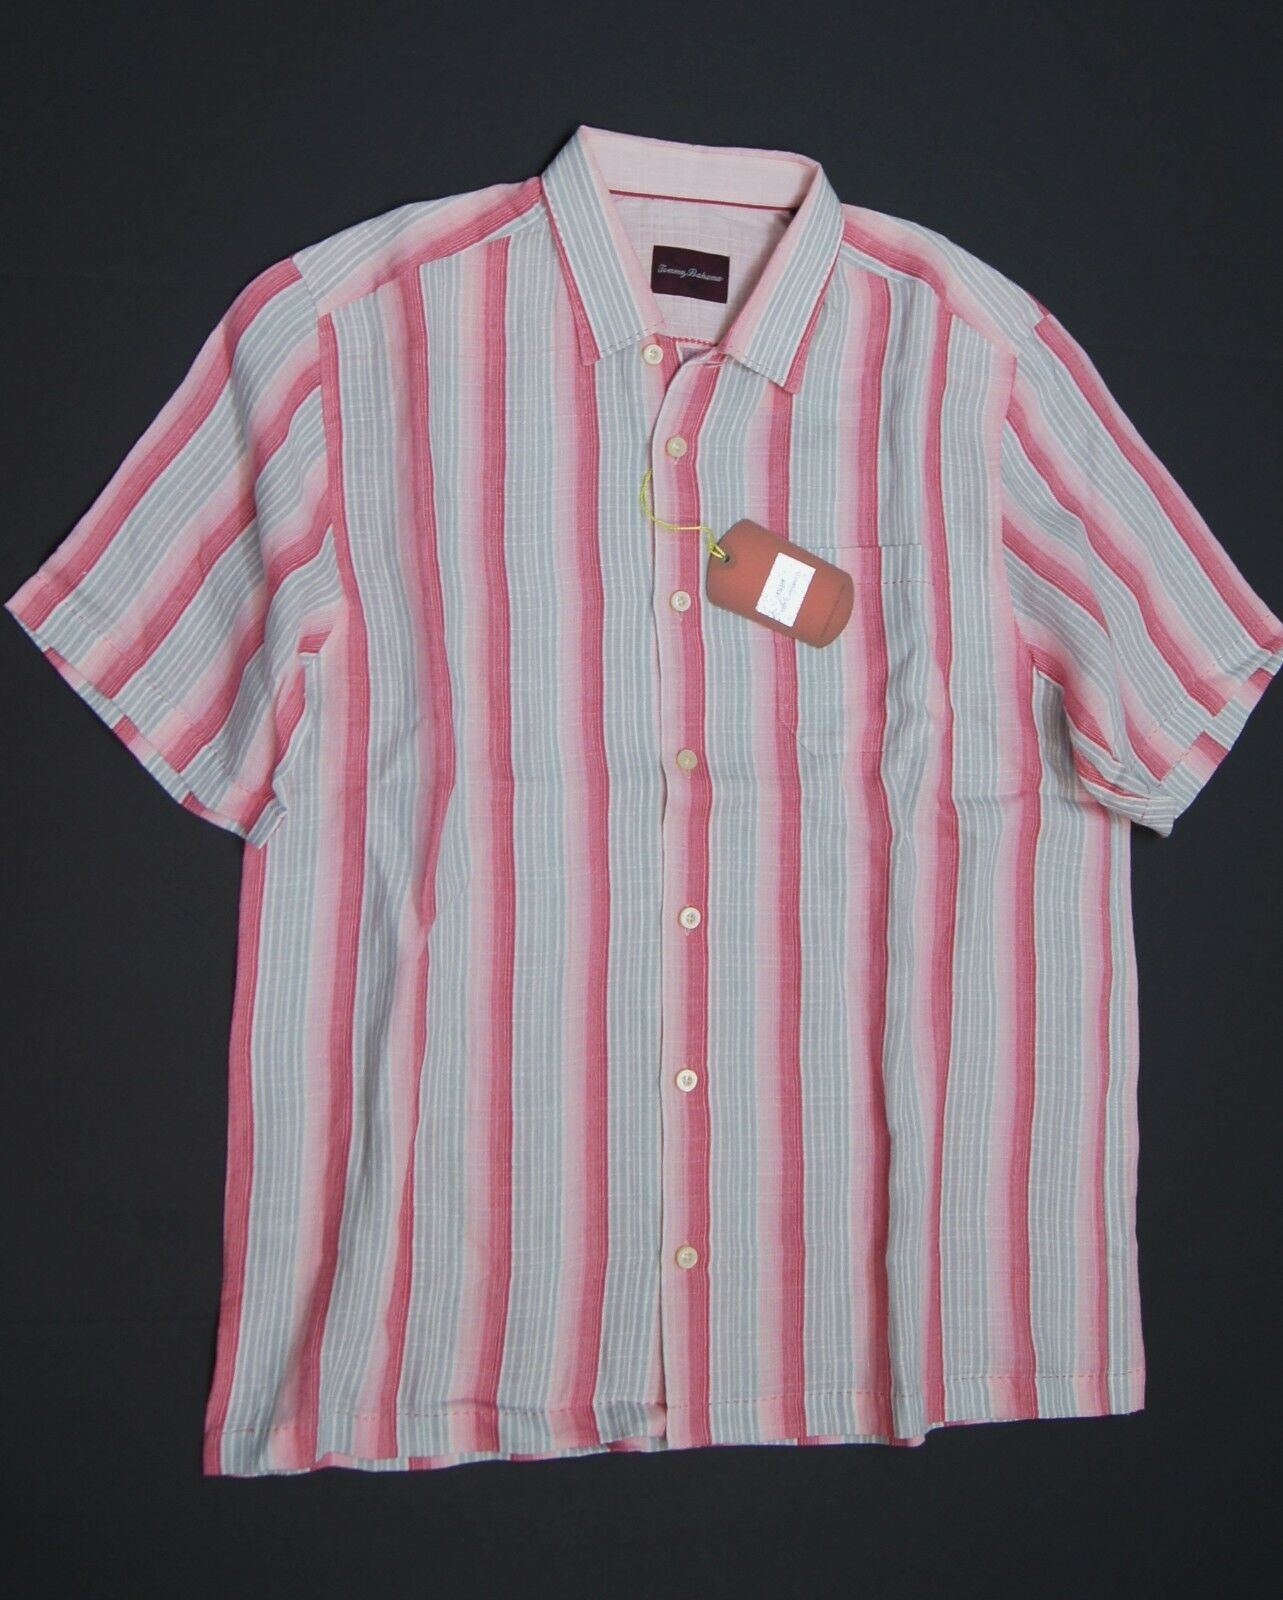 TOMMY BAHAMA Dried by Rose 'Stripe by Dried Stripewest' S/S Linen Sport Shirts NWT 4e65fb